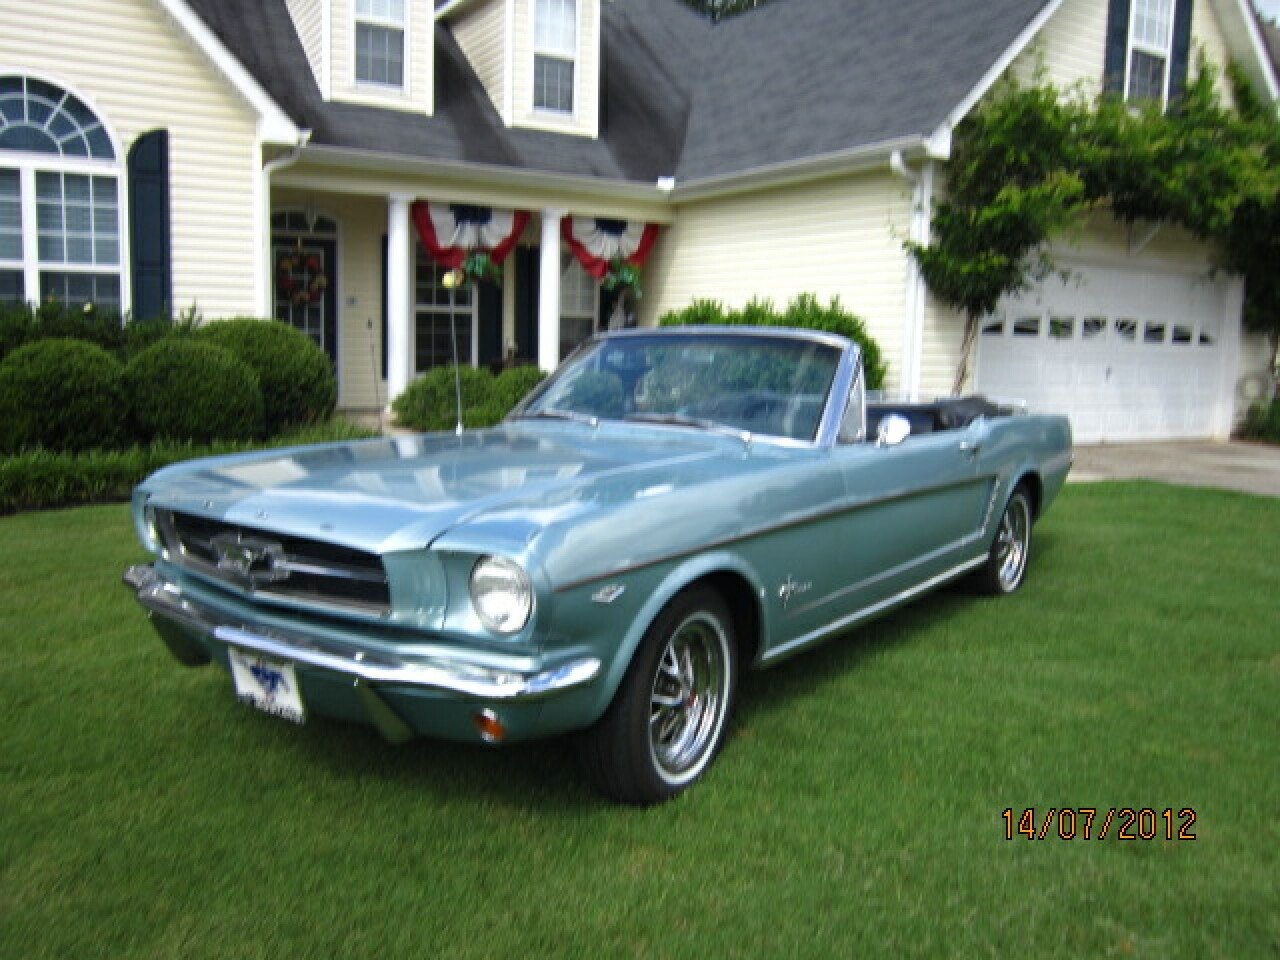 Autotrader Muscle Cars For Sale >> 1964 Ford Mustang Convertible for sale near Senoia, Georgia 30276 - Classics on Autotrader